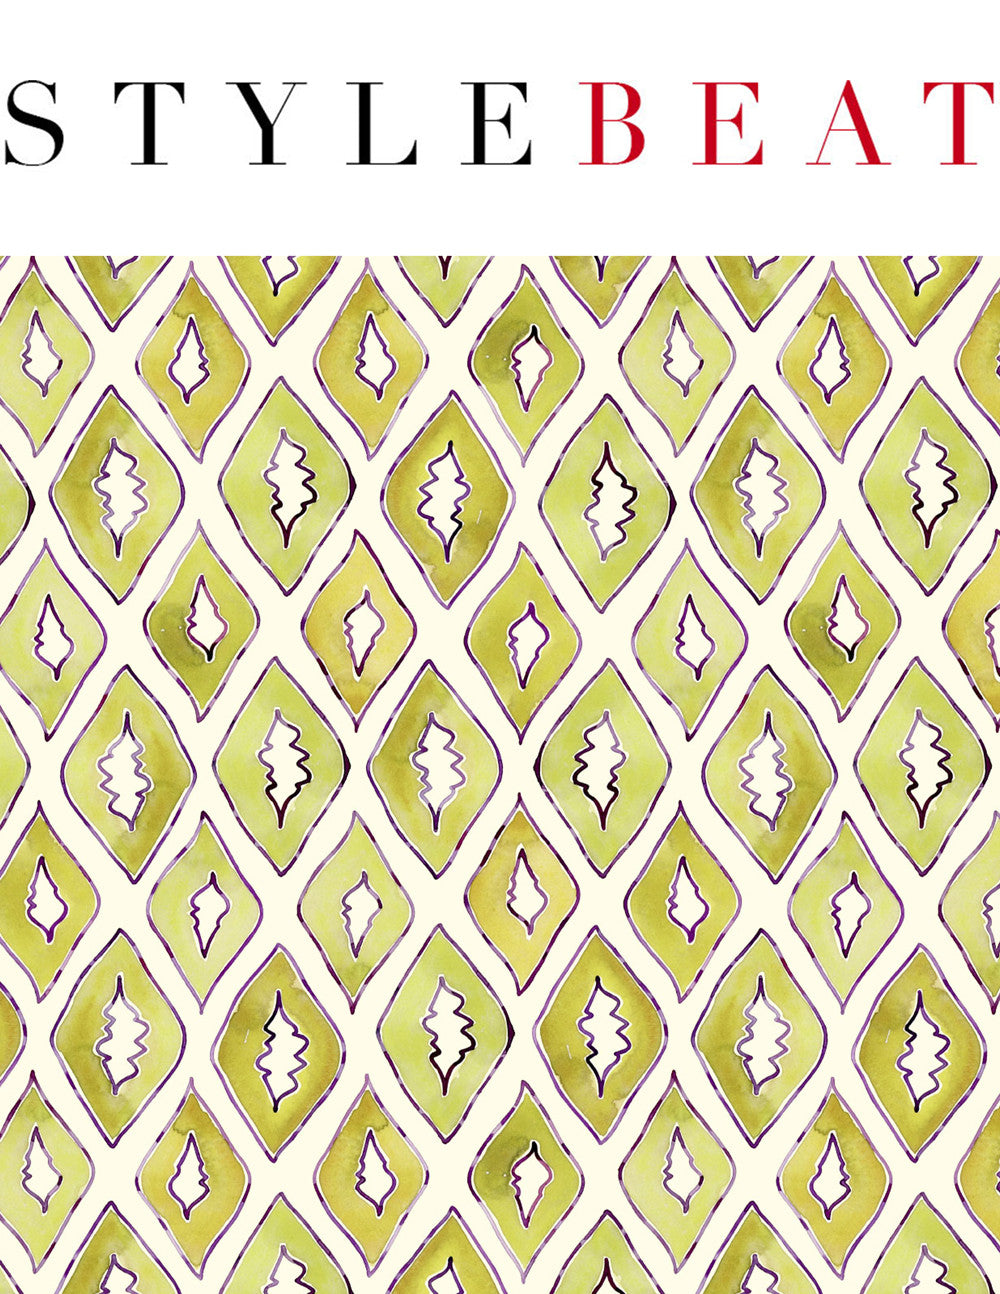 Boldly proportioned, colorful patterns by Sarah & Ruby